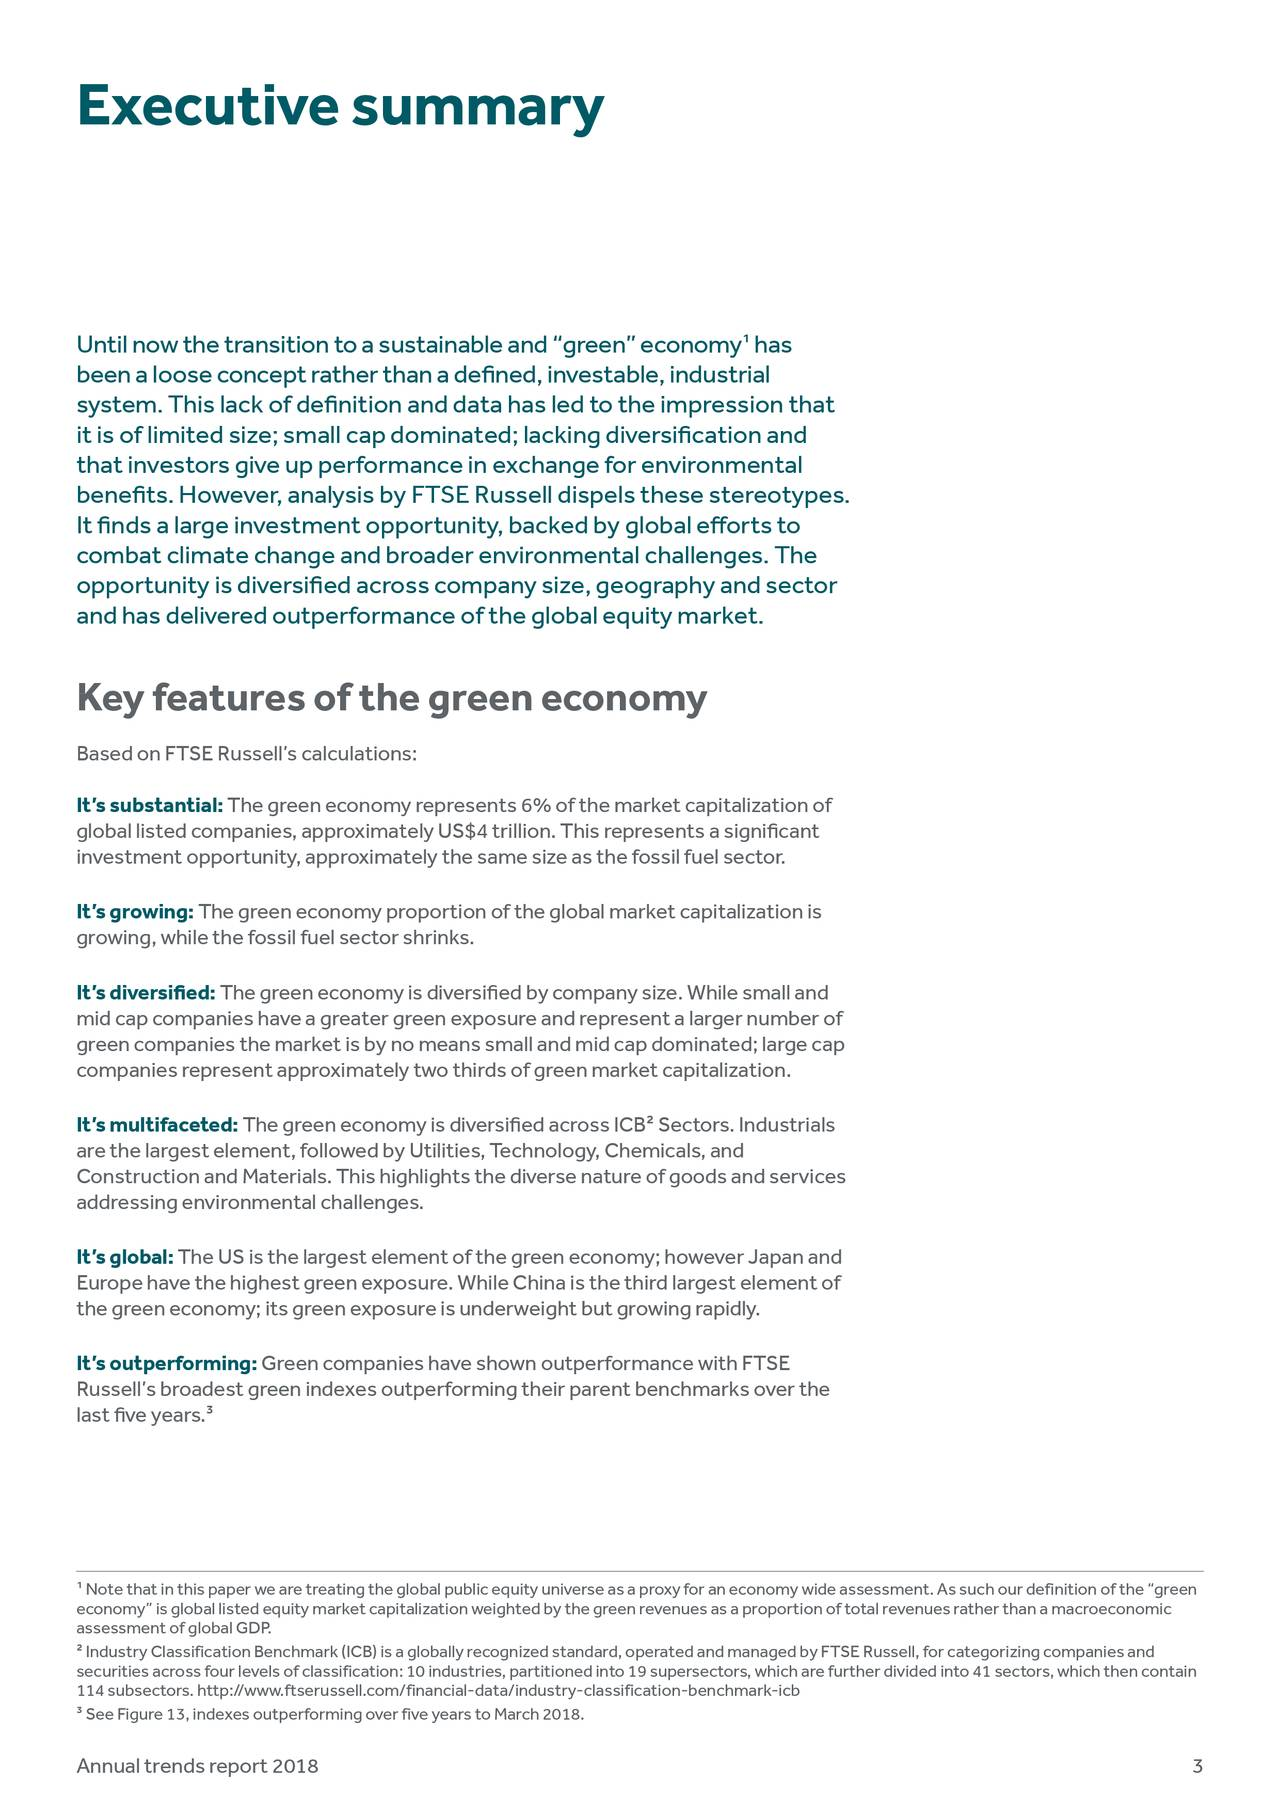 "Until now the transition to a sustainable and ""green"" economyhas 1 been a loose concept rather than a defined, investable, industria l system.This lack of definition and data has led to the impression that it is of limited size; small cap dominated; lacking diversification and that investors give up performance in exchange for environmental benefits. However, analysis by FTSE Russell dispels these stereotypes. It finds a large investment opportunity, backed by global efforts to combat climate change and broader environmental challenges. The opportunity is diversified across company size, geography and sector and has delivered outperformance of the global equity market. Keyfeaturesofthegreeneconomy Based on FTSE Russell's calculations: It'ssubstantial: The green economy represents 6% of the market capitalization of global listed companies, approximately US$4 trillion. This represents a significant investment opportunity, approximately the same size as the fossil fuel sector. It'sgrowing: The green economy proportion of the global market capitalization is growing, while the fossil fuel sector shrinks. It'sdiversified: The green economy is diversified by company size. While small and mid cap companies have a greater green exposure and represent a larger number of green companies the market is by no means small and mid cap dominated; large cap companies represent approximately two thirds of green market capitalization. It'smultifaceted: The green economy is diversified across ICB2Sectors.Industrials are the largest element, followed by Utilities, Technology, Chemicals, and Construction and Materials. This highlights the diverse nature of goods and services addressingenvironmentalchallenges. It'sglobal: The US is the largest element of the green economy; however Japan and Europe have the highest green exposure. While China is the third largest element of the green economy; its green exposure is underweight but growing rapidly. It'soutperforming: Green companies have shown outperformance with FTSE Russell's broadest green indexes outperforming their parent benchmarks over the last five years.3 1 Note that in this paper we are treating the global public equity universe as a proxy for an economy wide assessment. As such our definition of the ""green assessment of global GDP. equity market capitalization weighted by the green revenues as a proportion of total revenues rather than a macroeconomic 2Industry Classification Benchmark (ICB) is a globally recognized standard, operated and managed by FTSE Russell, for categorizing companies and securities across four levels of classification: 10 industries, partitioned into 19 supersectors, which are further divided into 41 sectors, which then contain 114 subsectors. http://www.ftserussell.com/financial-data/industry-classification-benchmark-icb 3 See Figure 13, indexes outperforming over five years to March 2018. Annualtrendsreport2018 3"